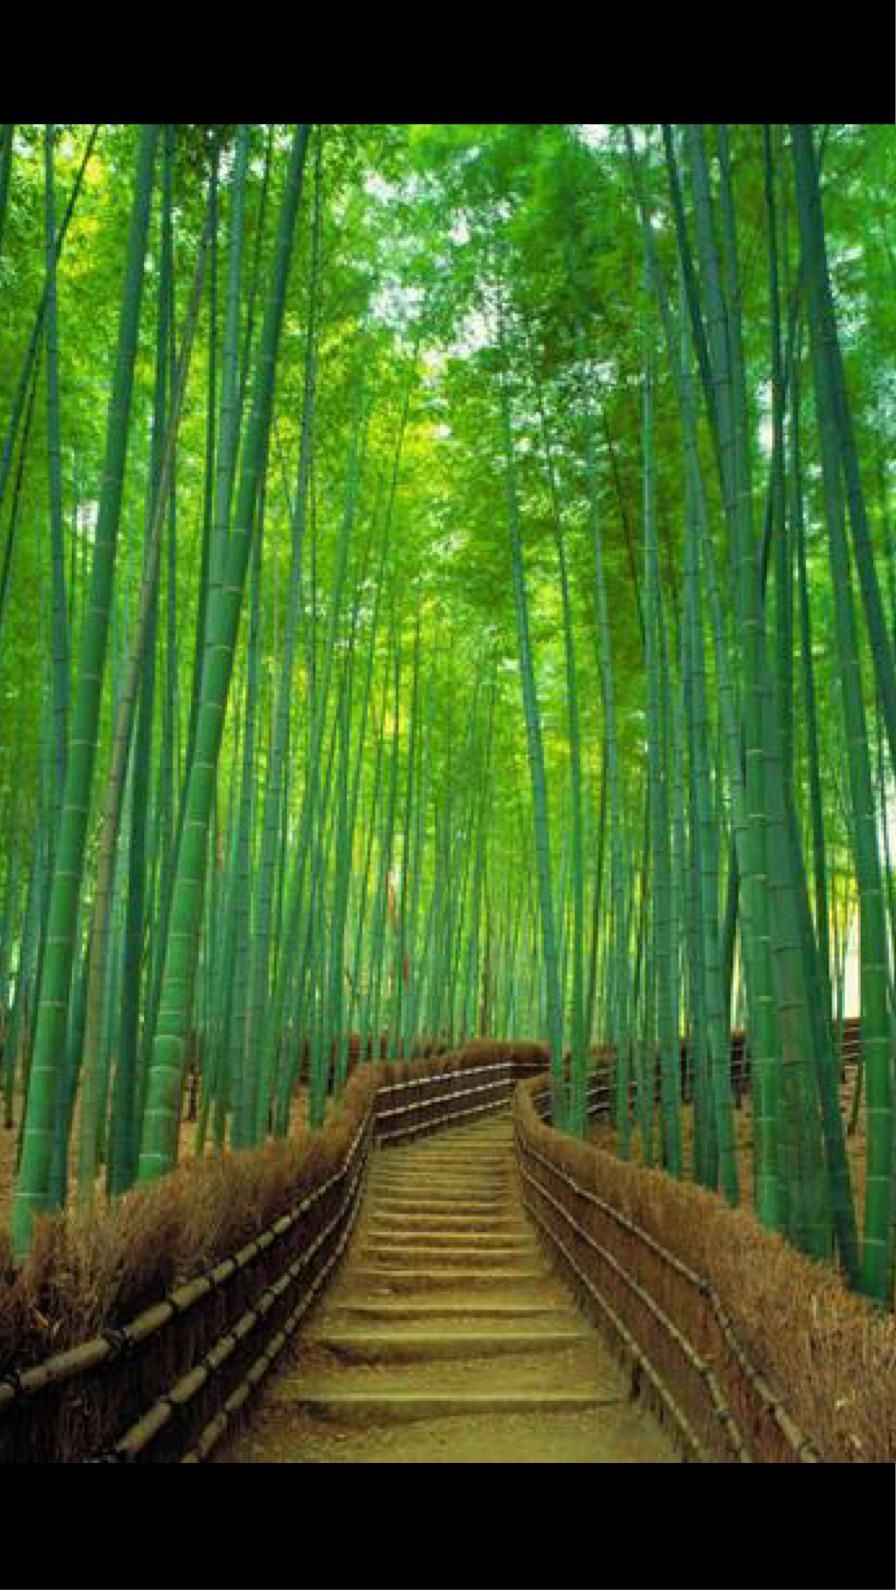 Bamboo Forest In 2020 Bamboo Forest Stunning Wallpapers Bamboo